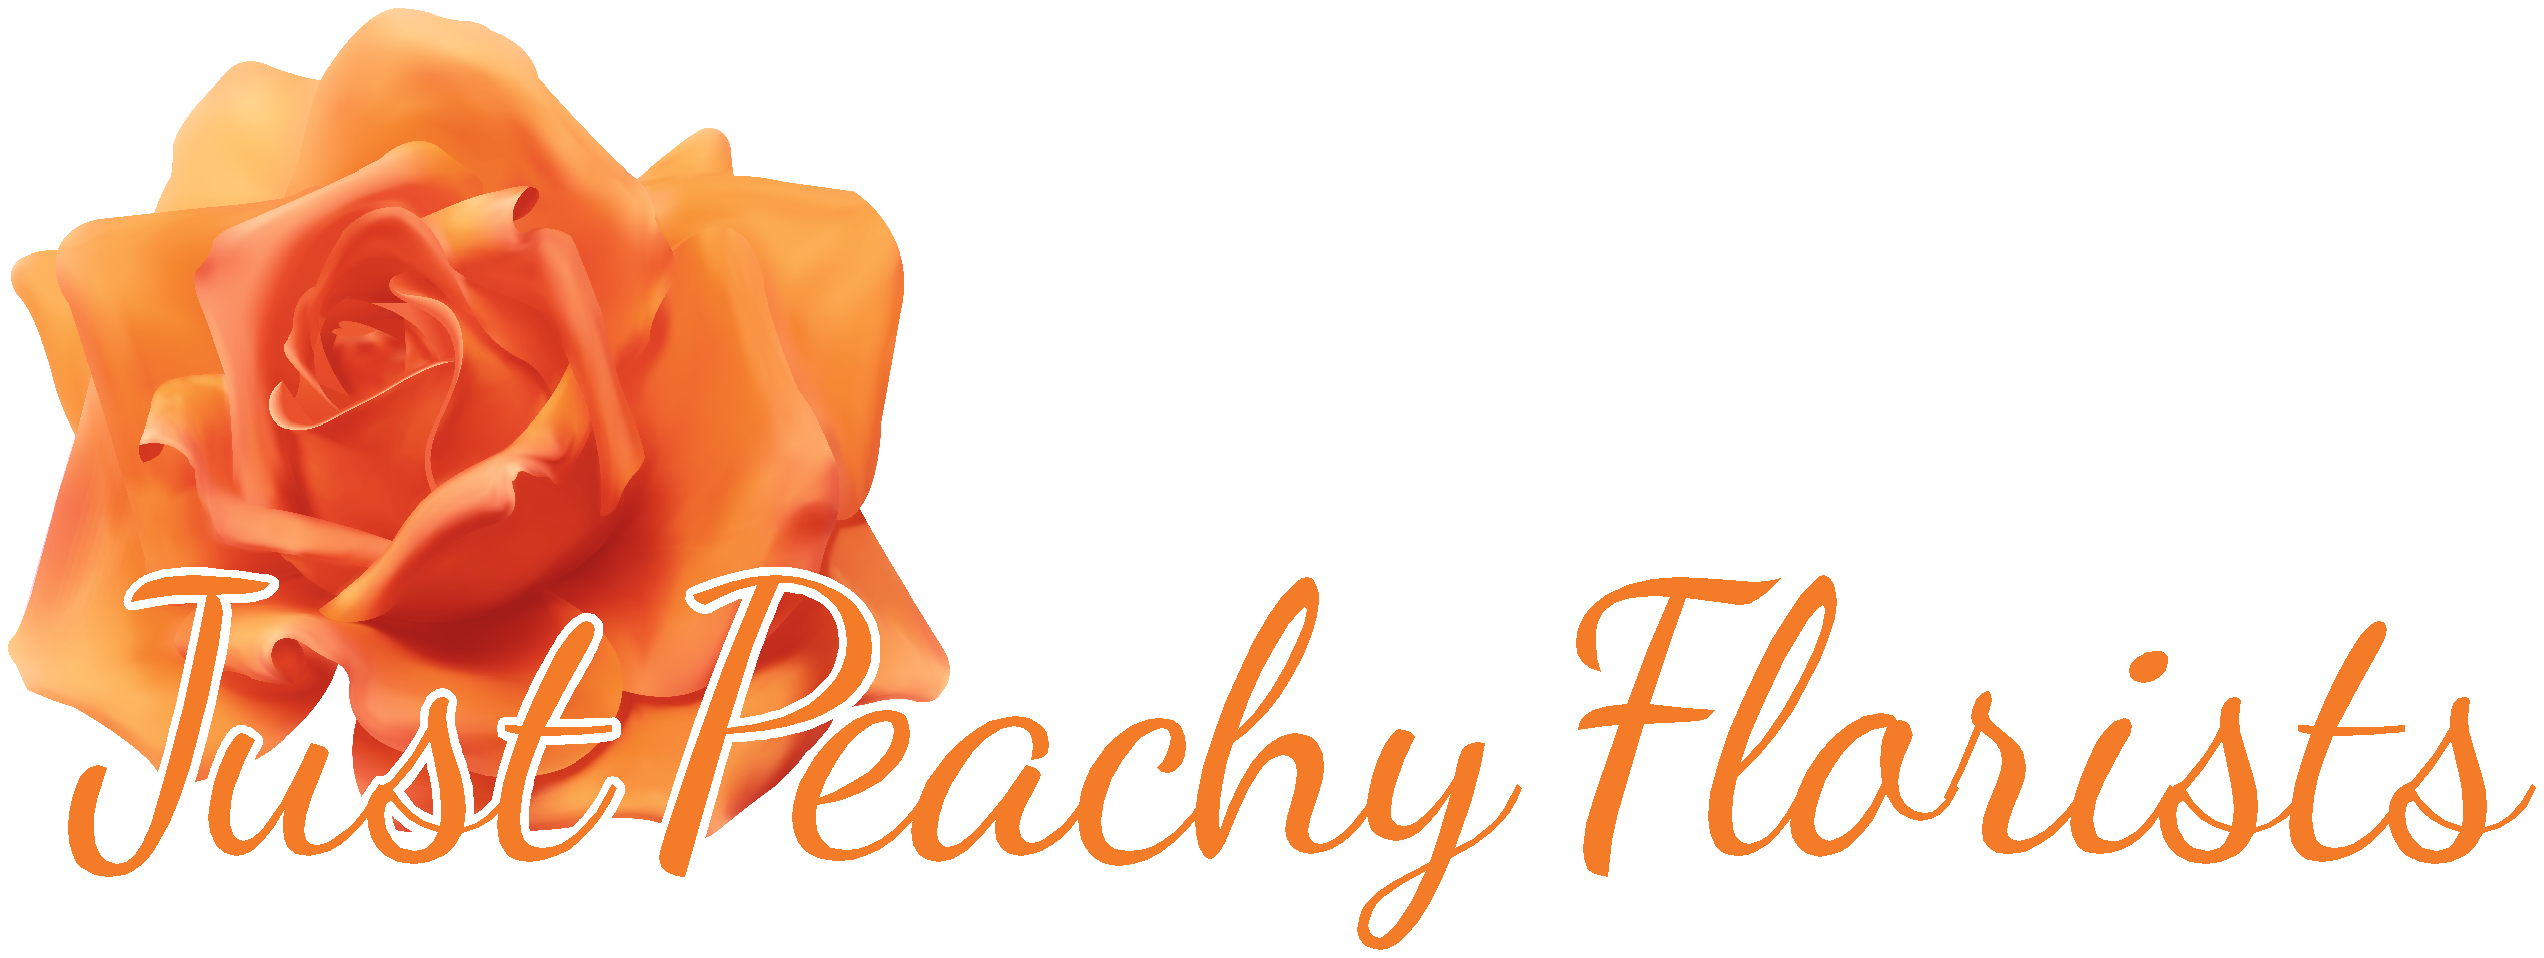 Just Peachy Florists